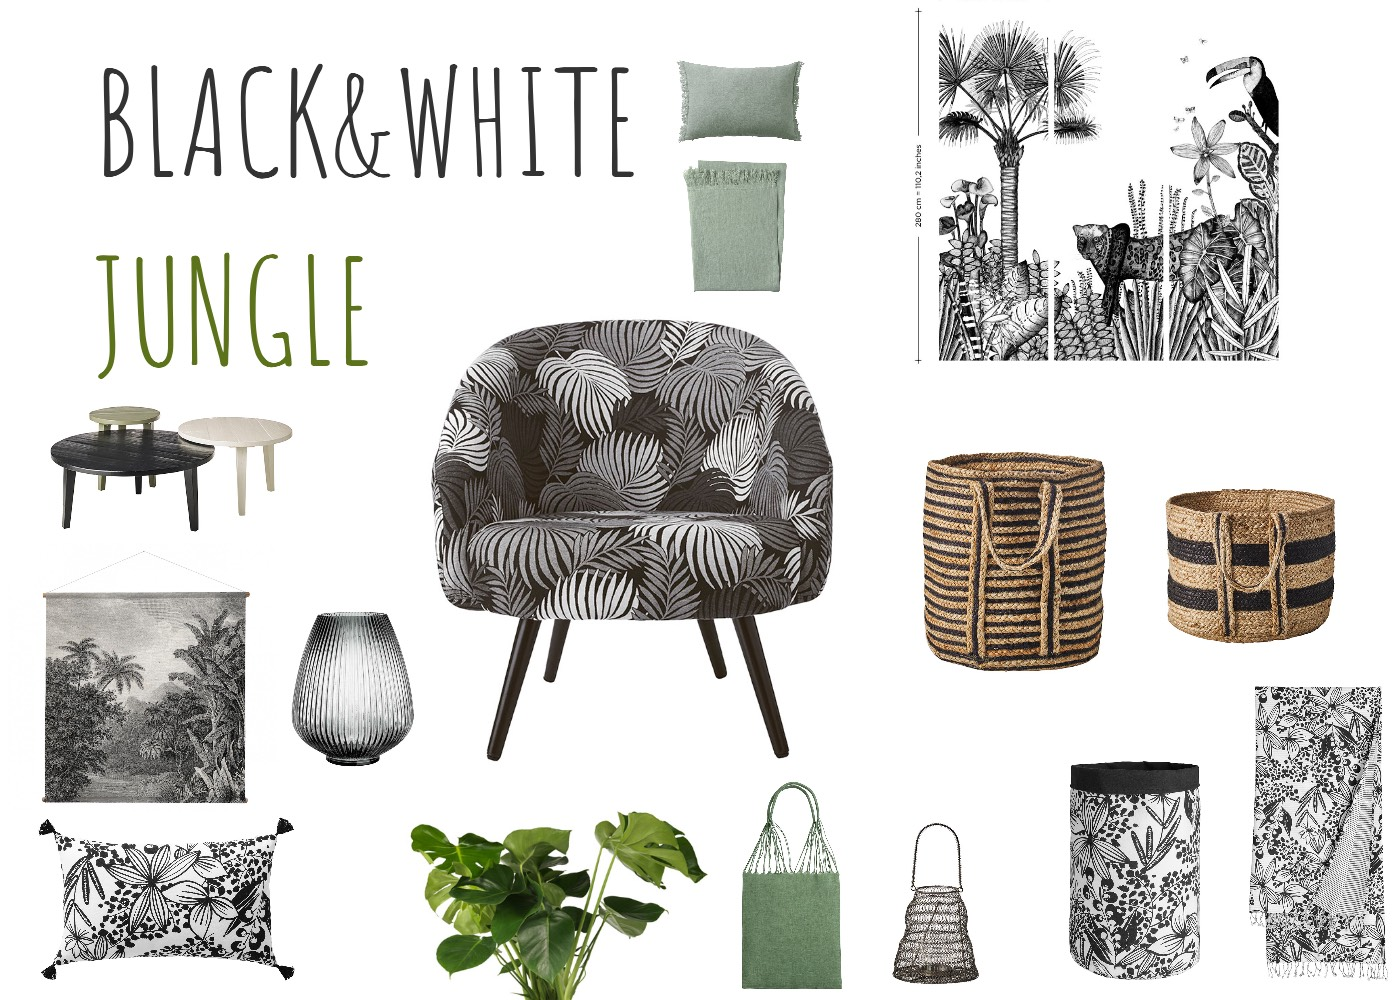 Black&White Jungle